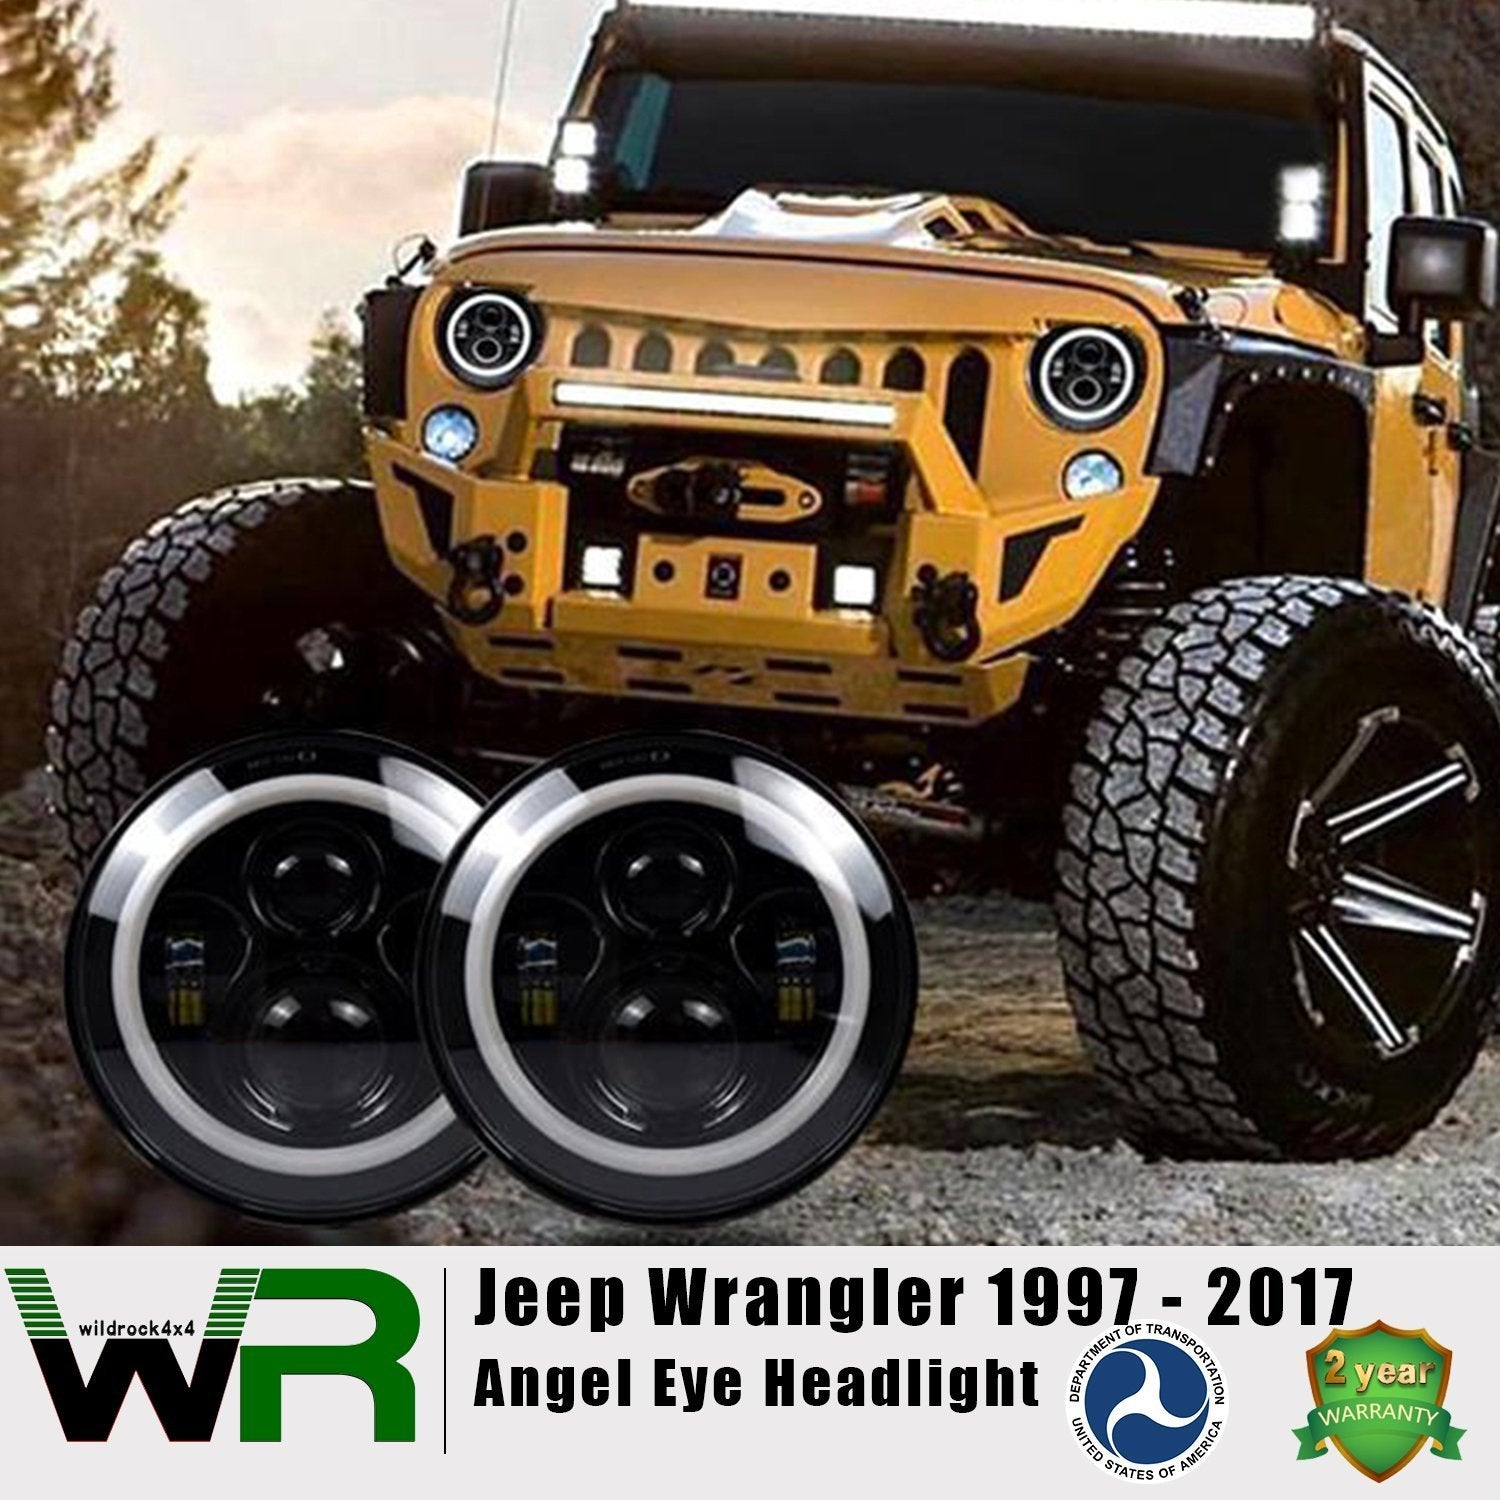 7 Inch Halo Headlights for Jeep Wrangler TJ JK 97-18